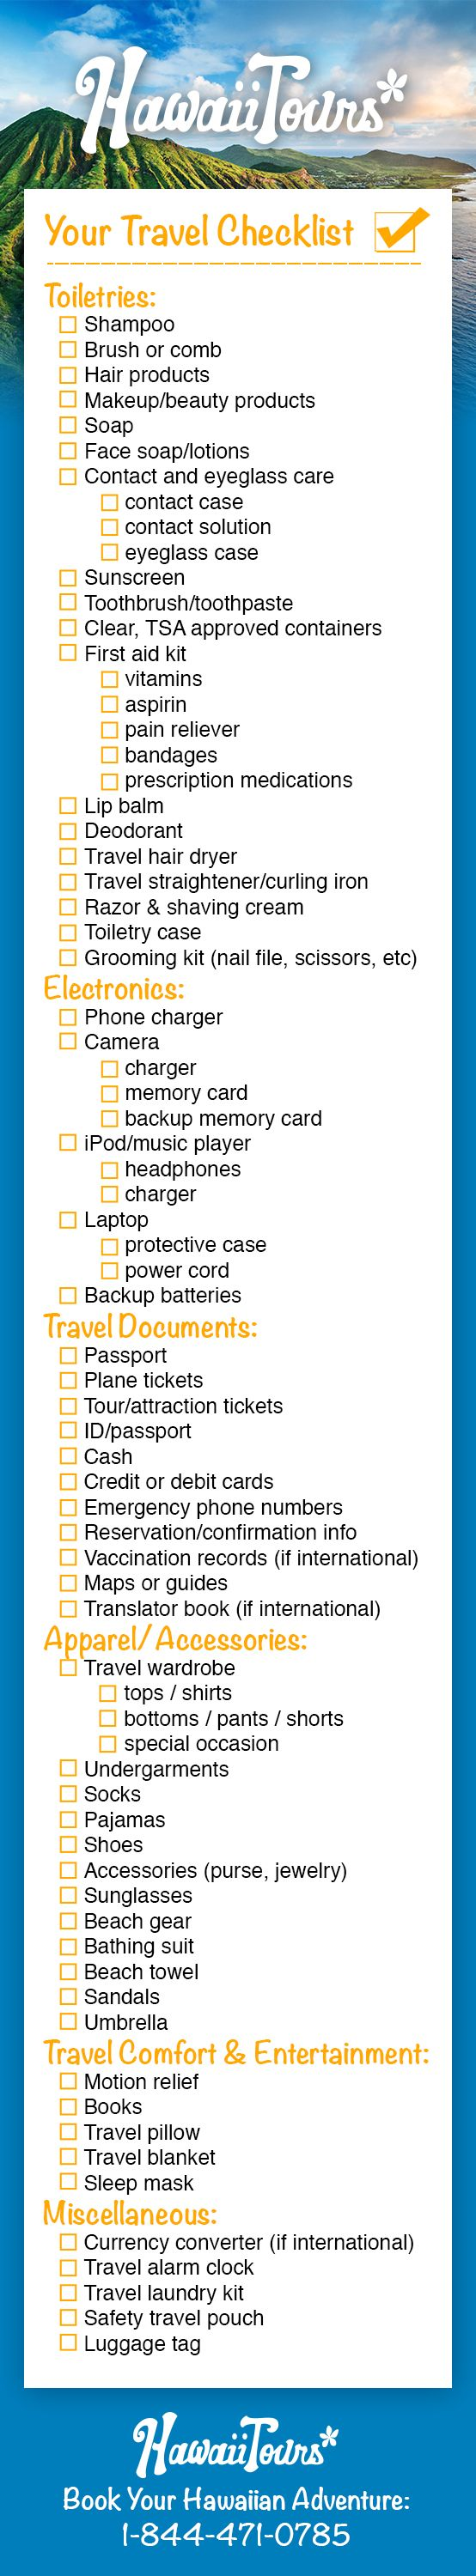 Visiting Hawaii this summer? Don't know what to pack? Here's a travel checklist just for you!  Book your Hawaiian adventure:  https://www.hawaiitours.com/